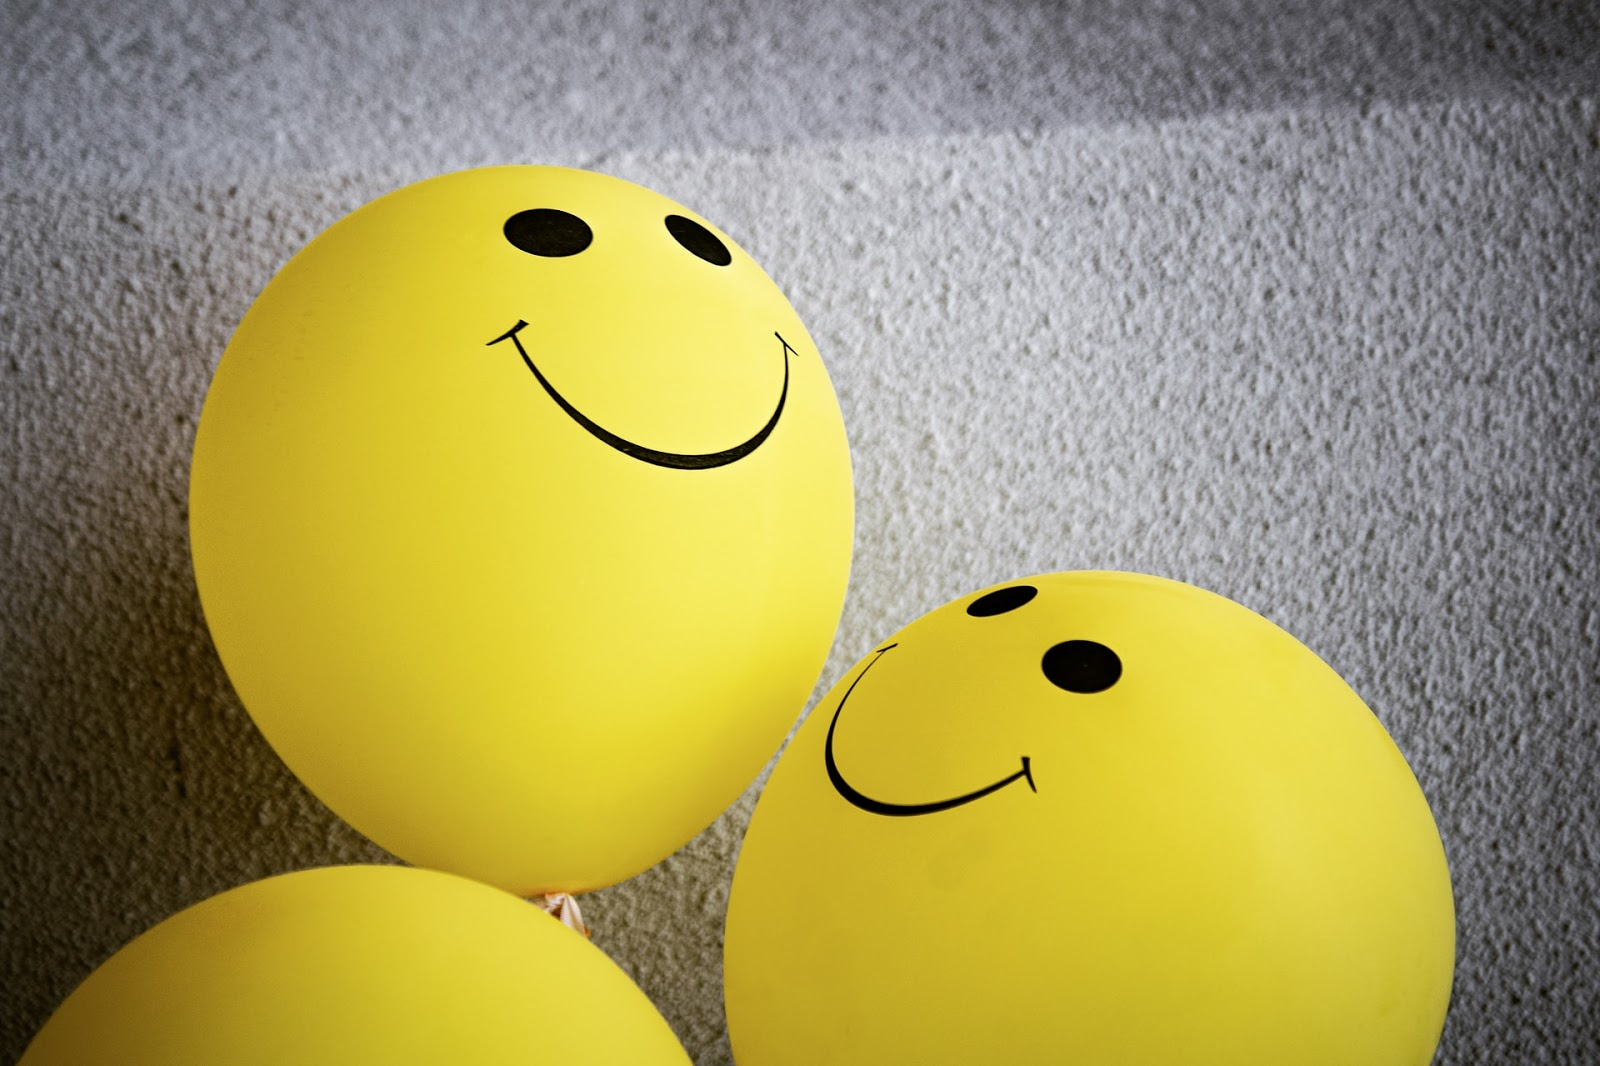 yellow balloons with smiley faces.